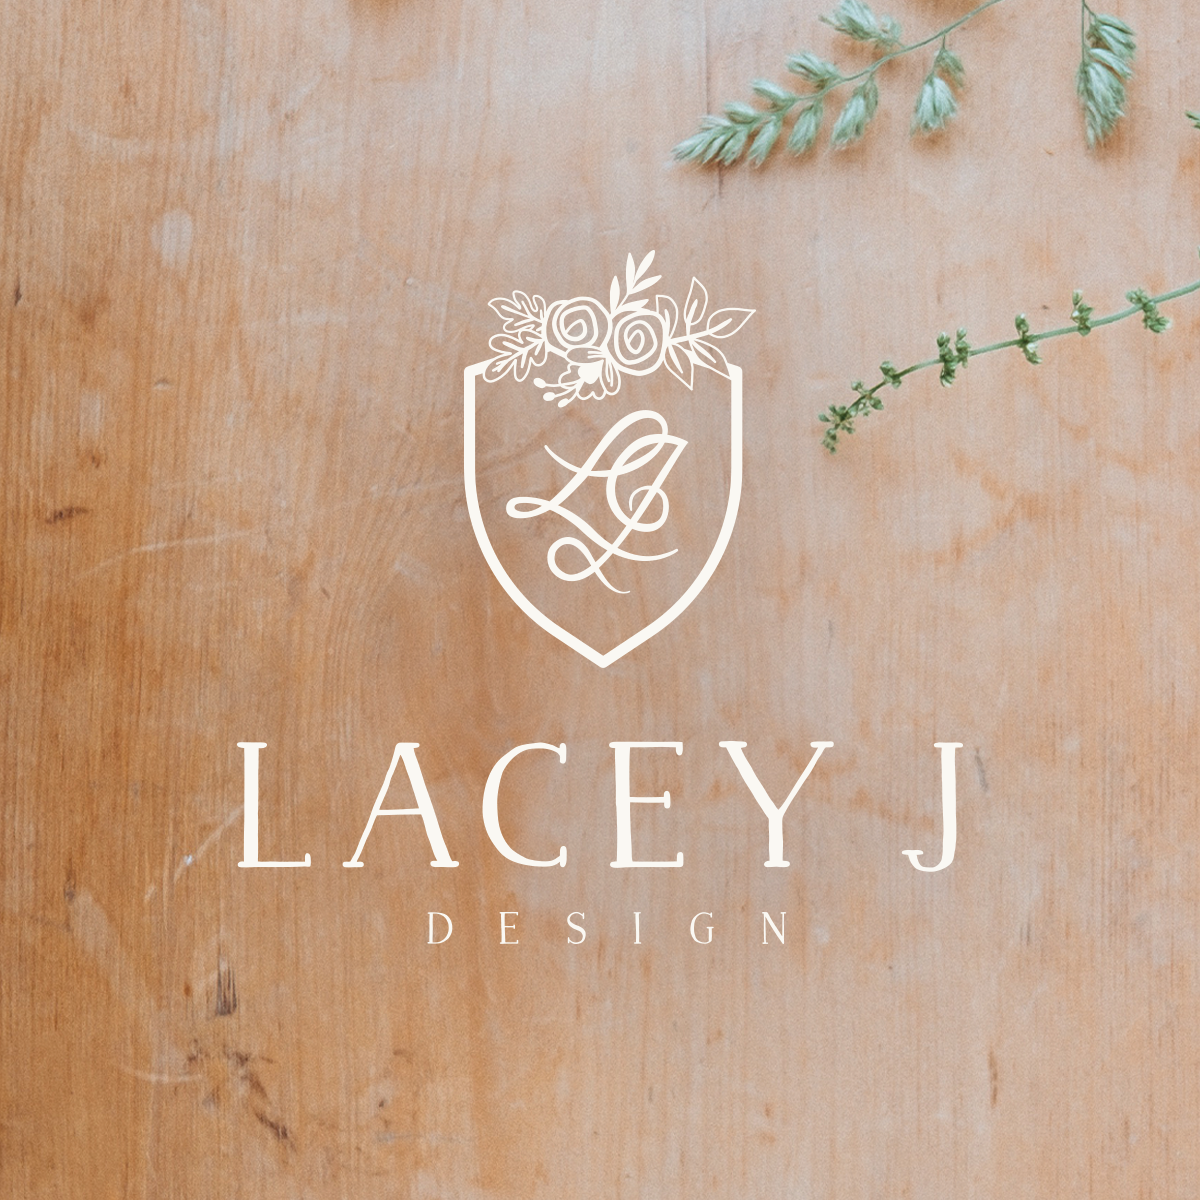 Lacey J Design brand design | Collaboration with Spruce Rd. and Pace Creative Design Studio